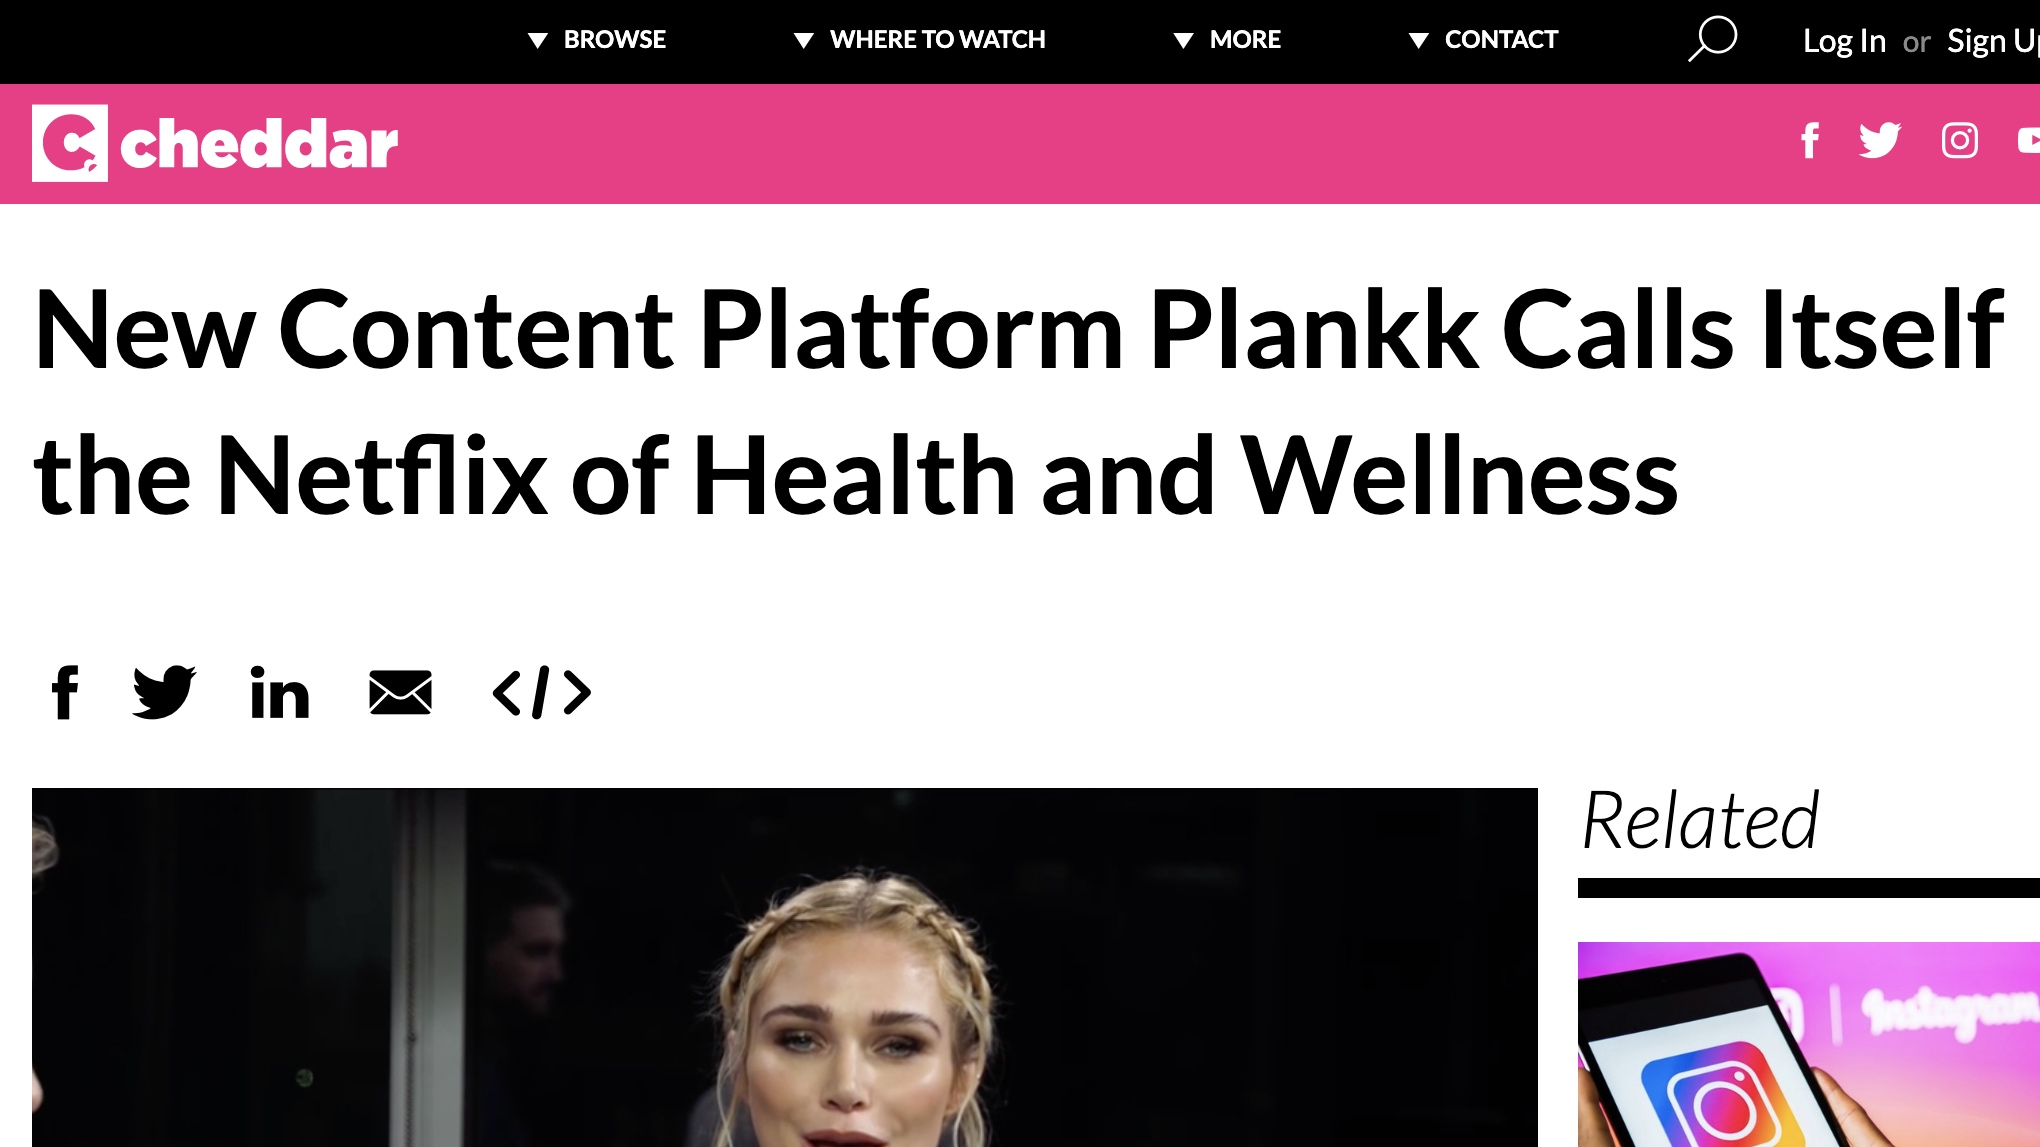 Cheddar - New Content Platform Plankk Calls Itself the Netflix of Health and Wellness